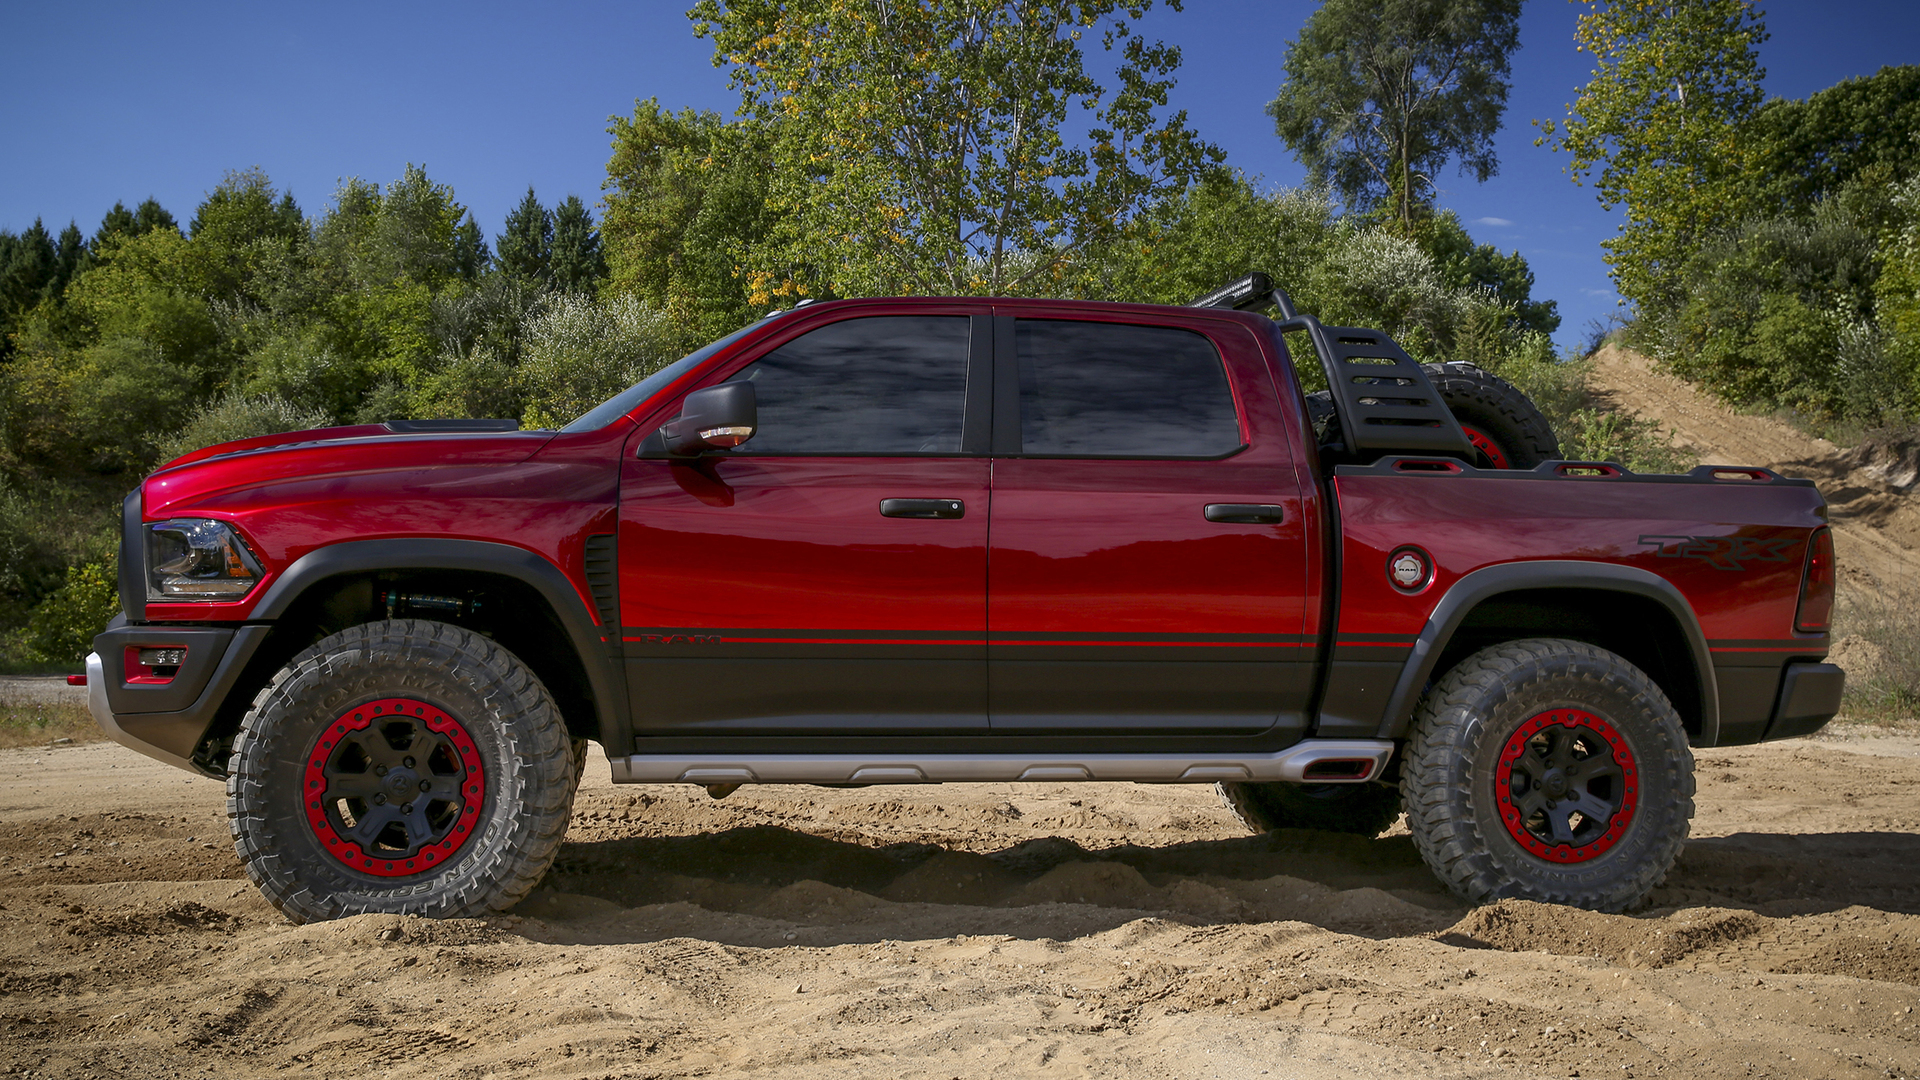 Dodge Ram Trx Concept >> Ram Rebel TRX concept is a 575-hp Raptor fighter